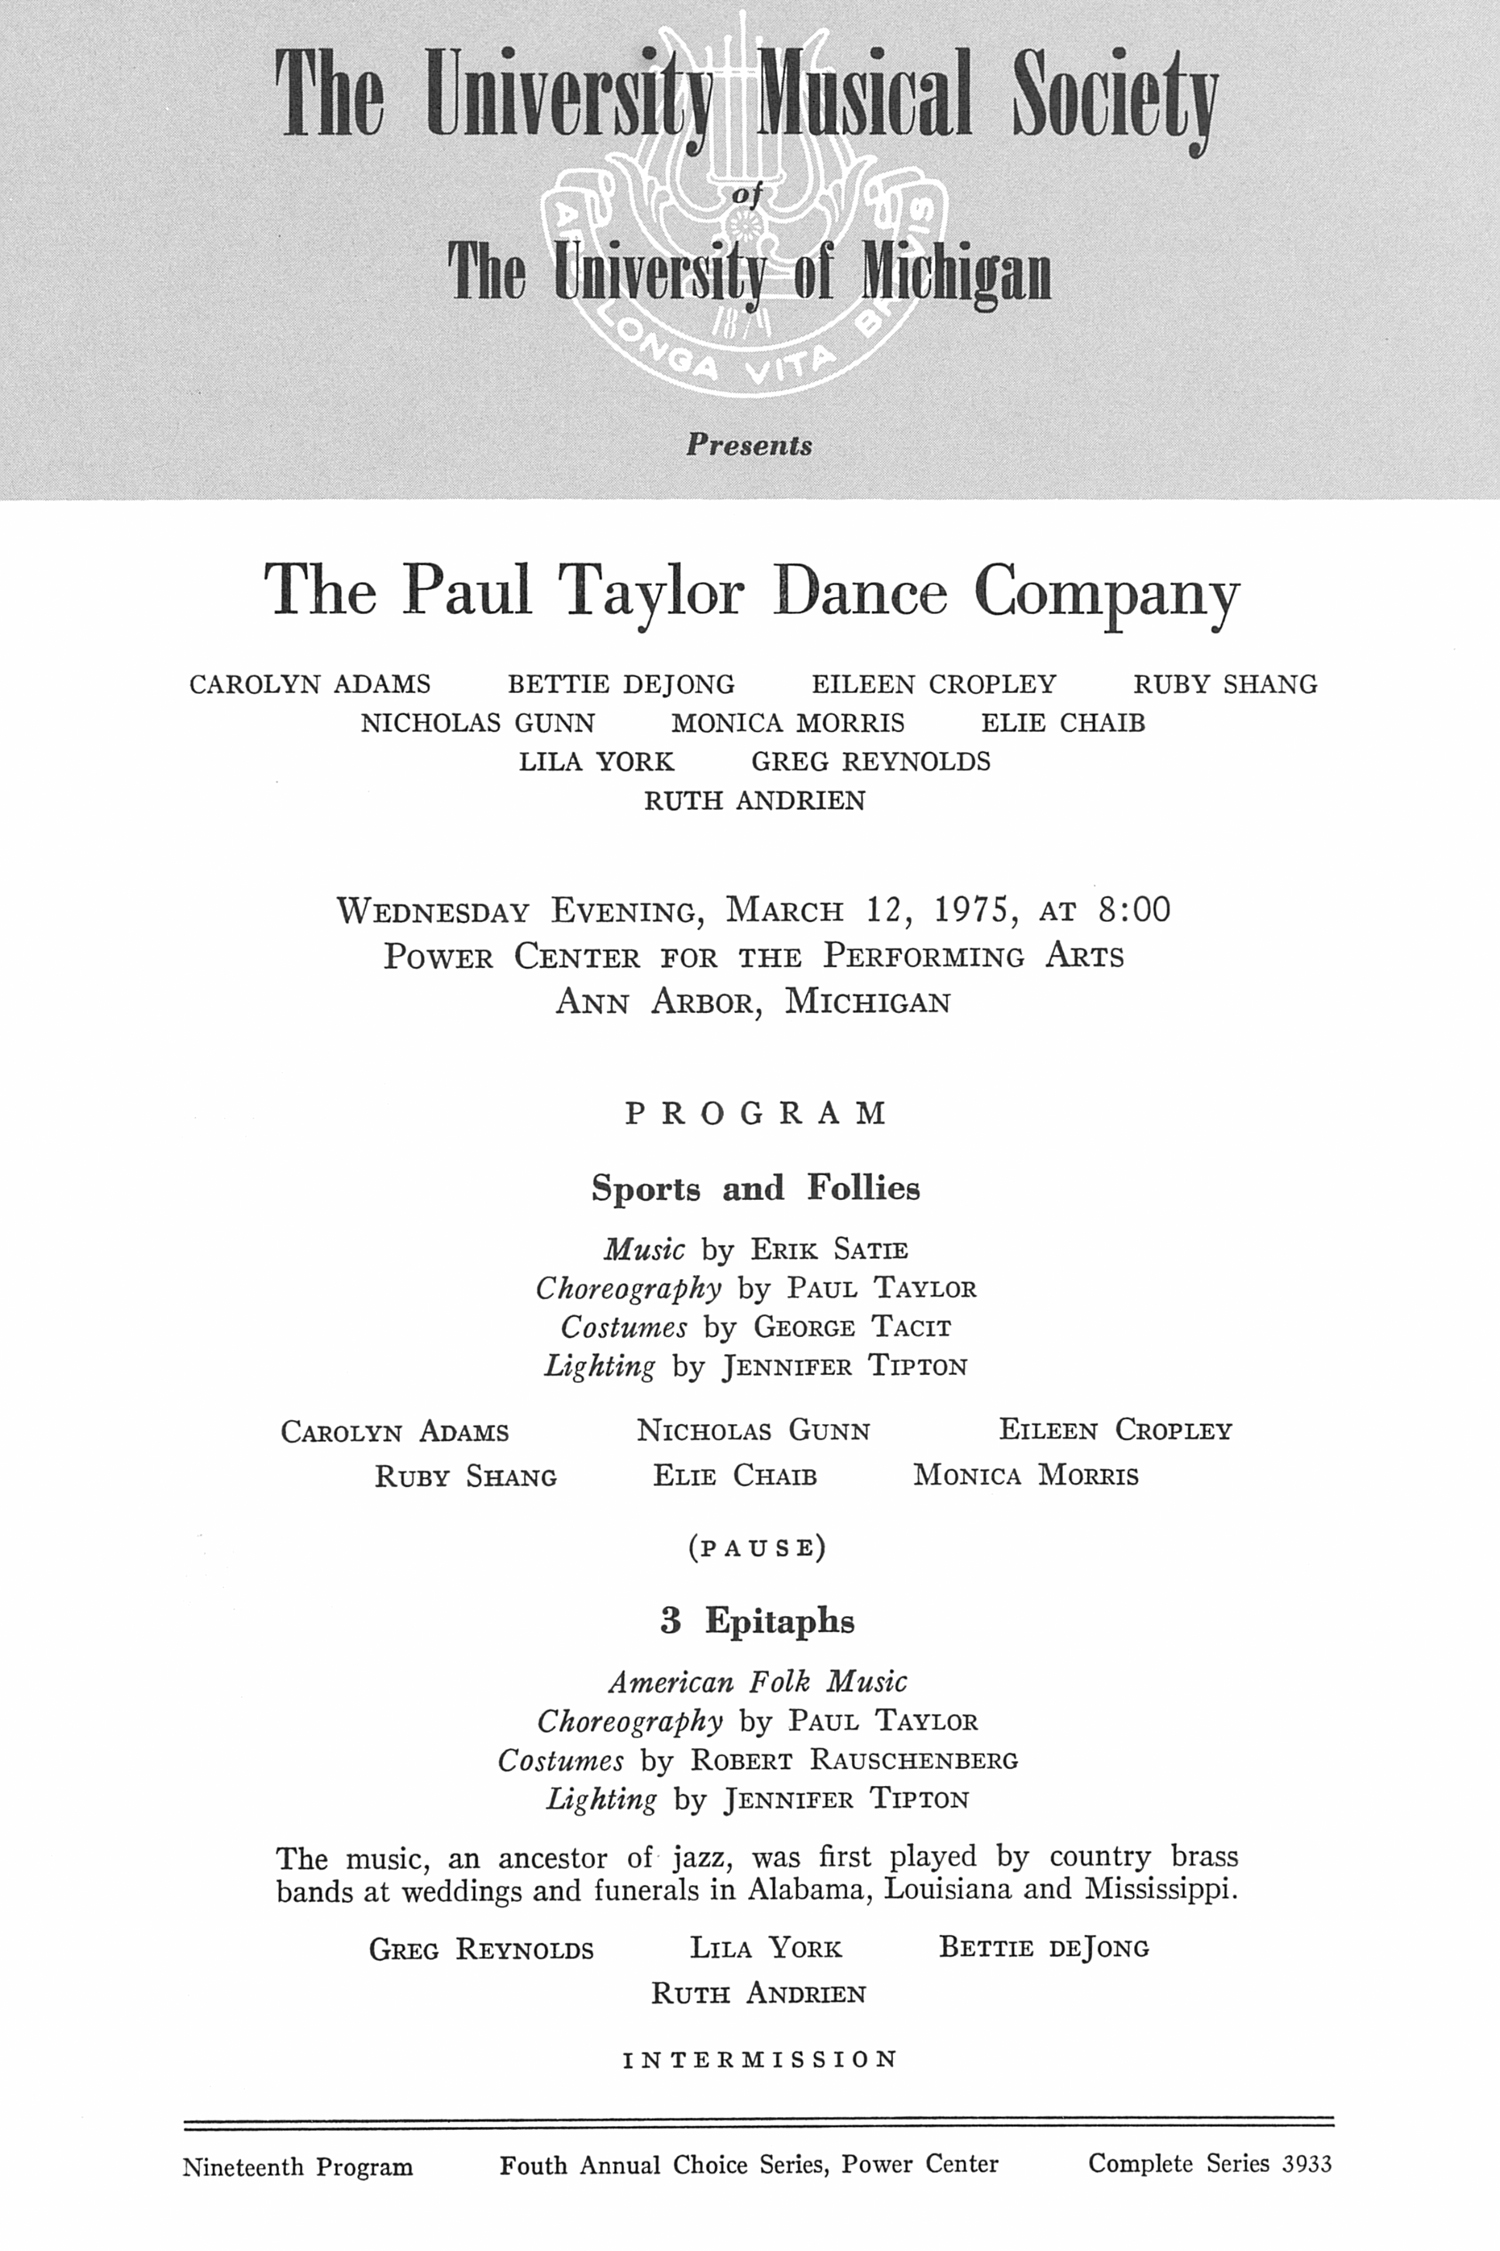 UMS Concert Program, March 12, 1975: The Paul Taylor Dance Company --  image